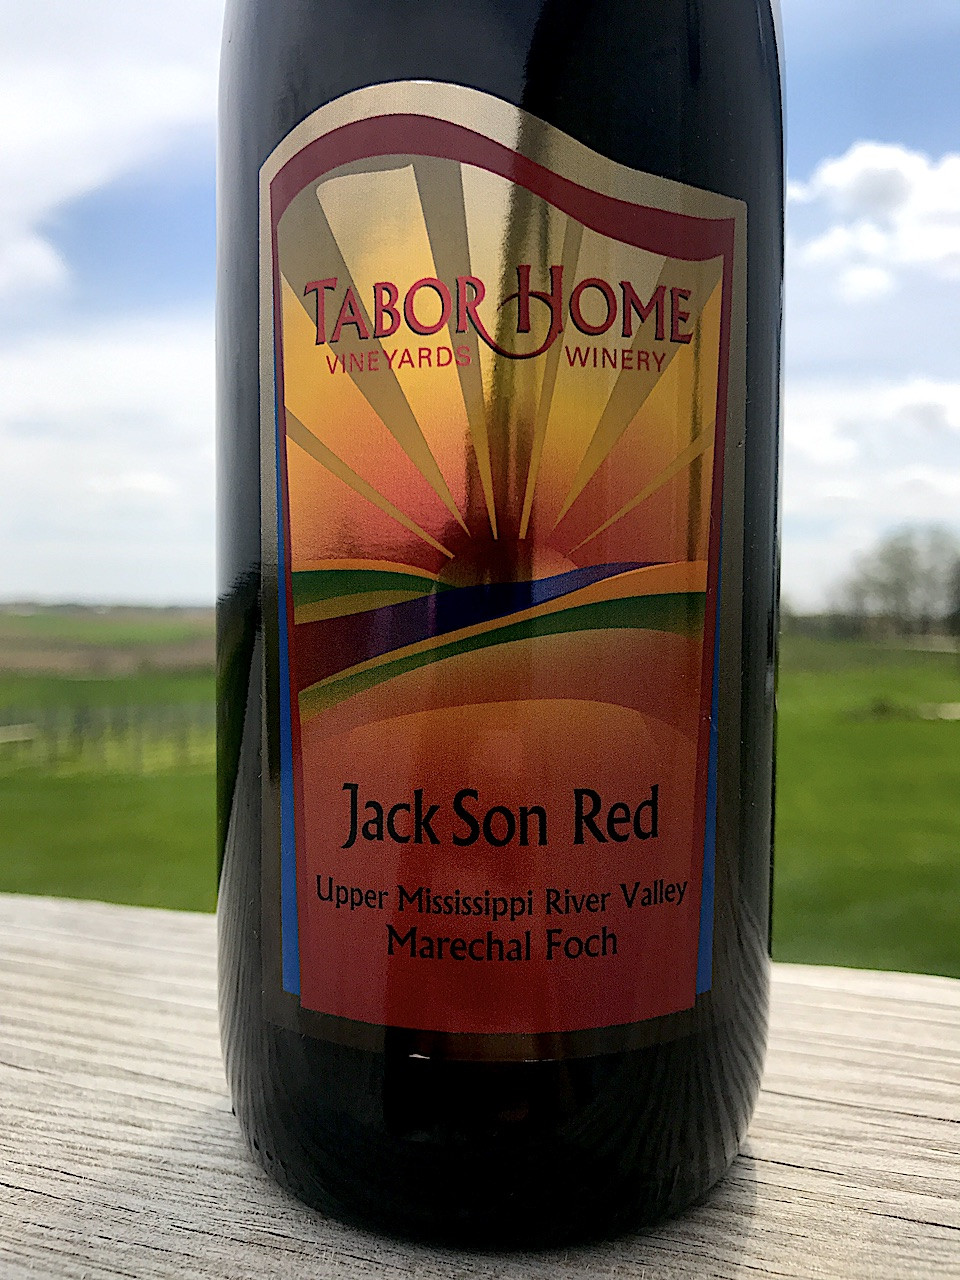 Tabor Home Winery - JackSon Red